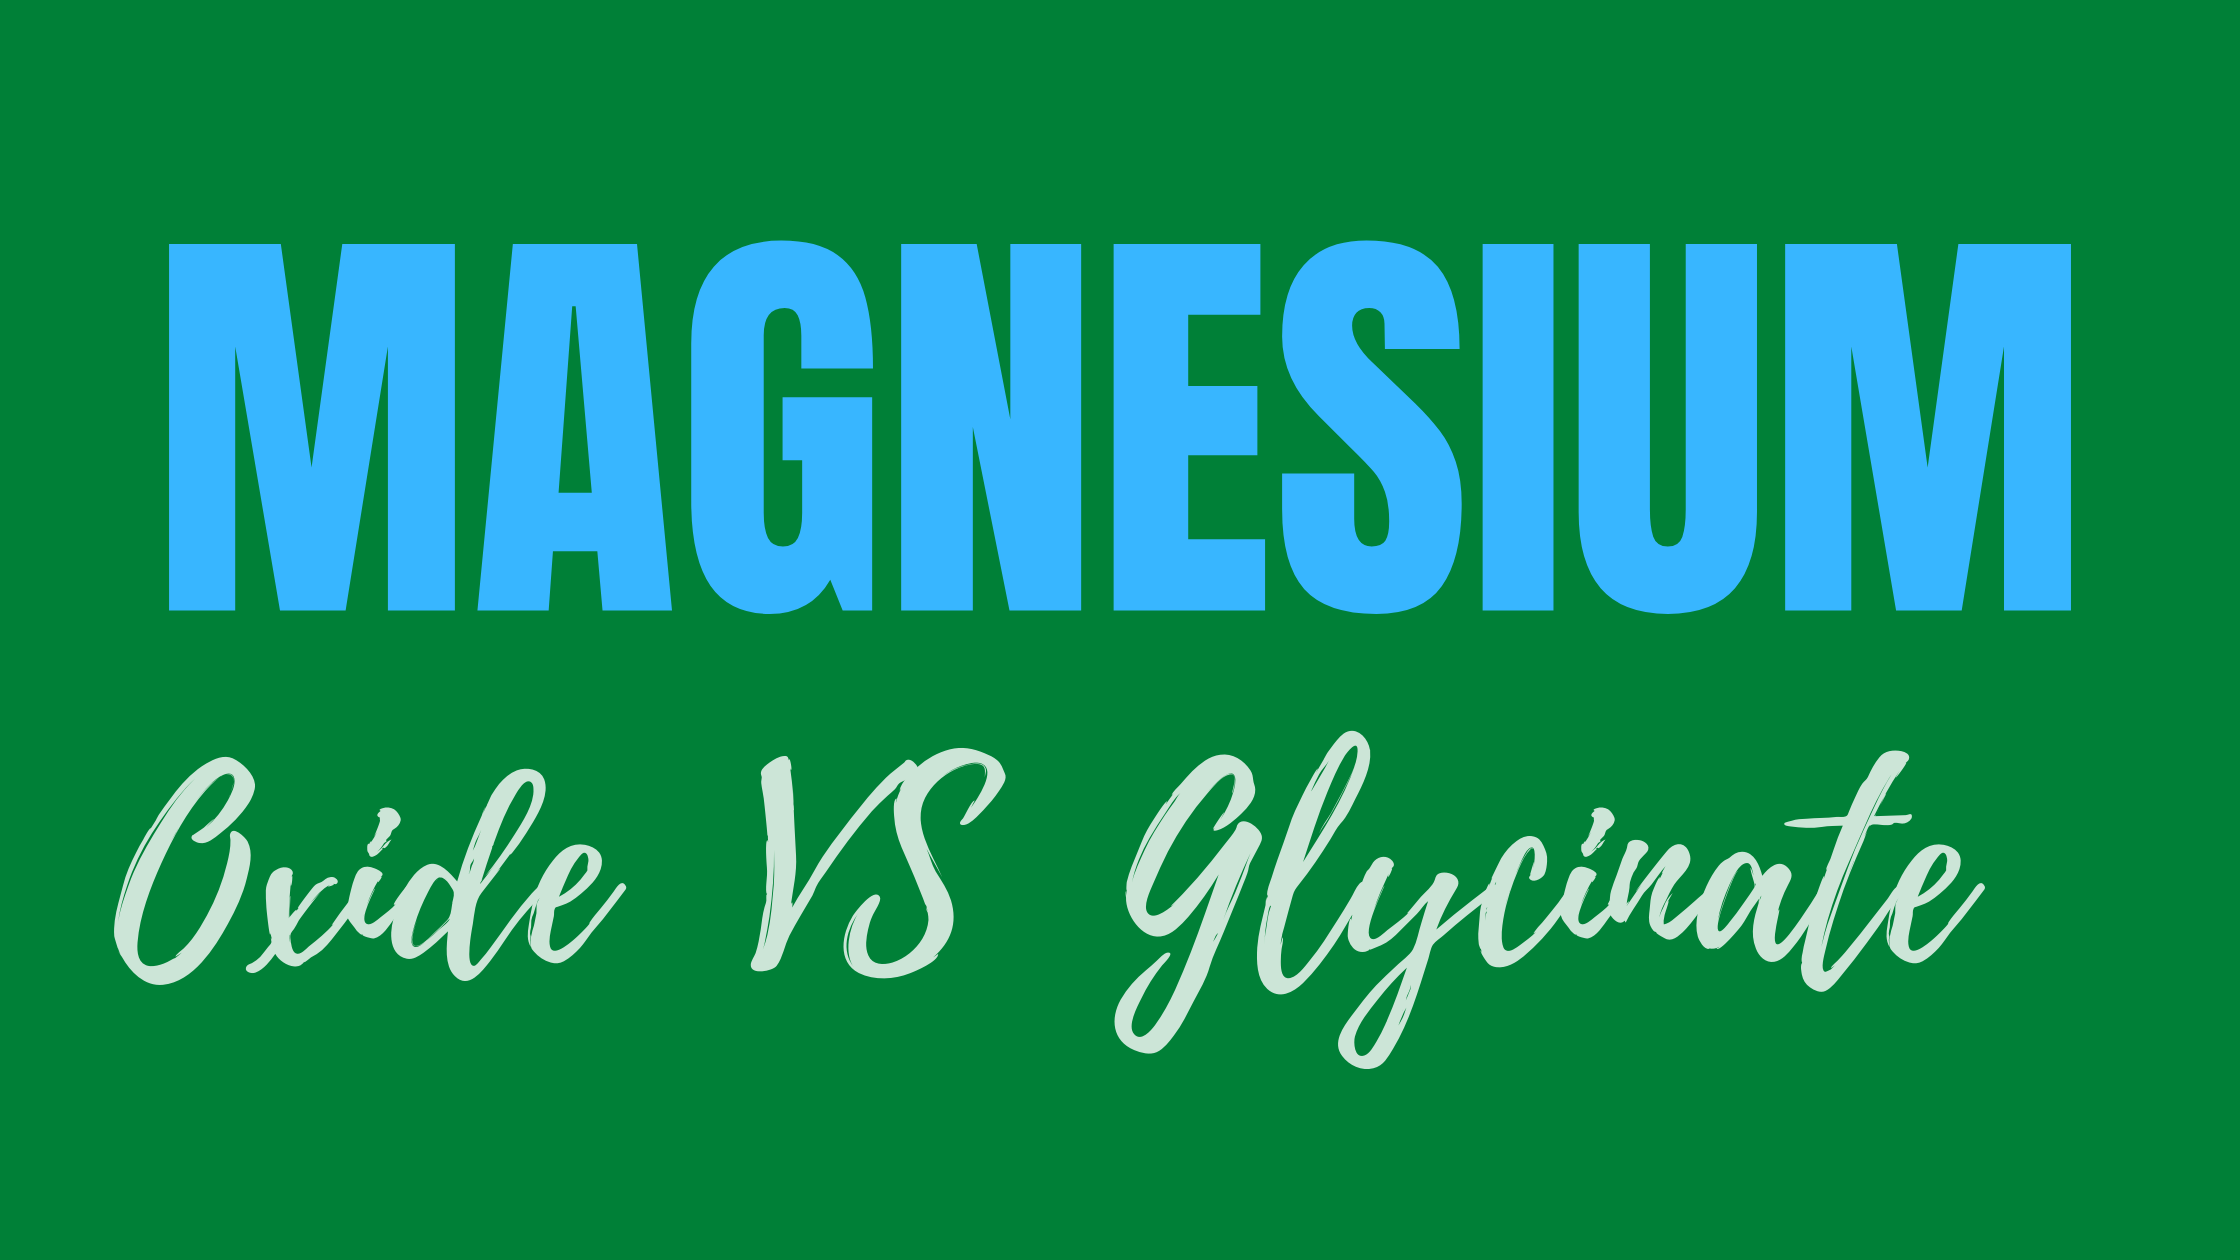 Magnesium Oxide vs Glycinate